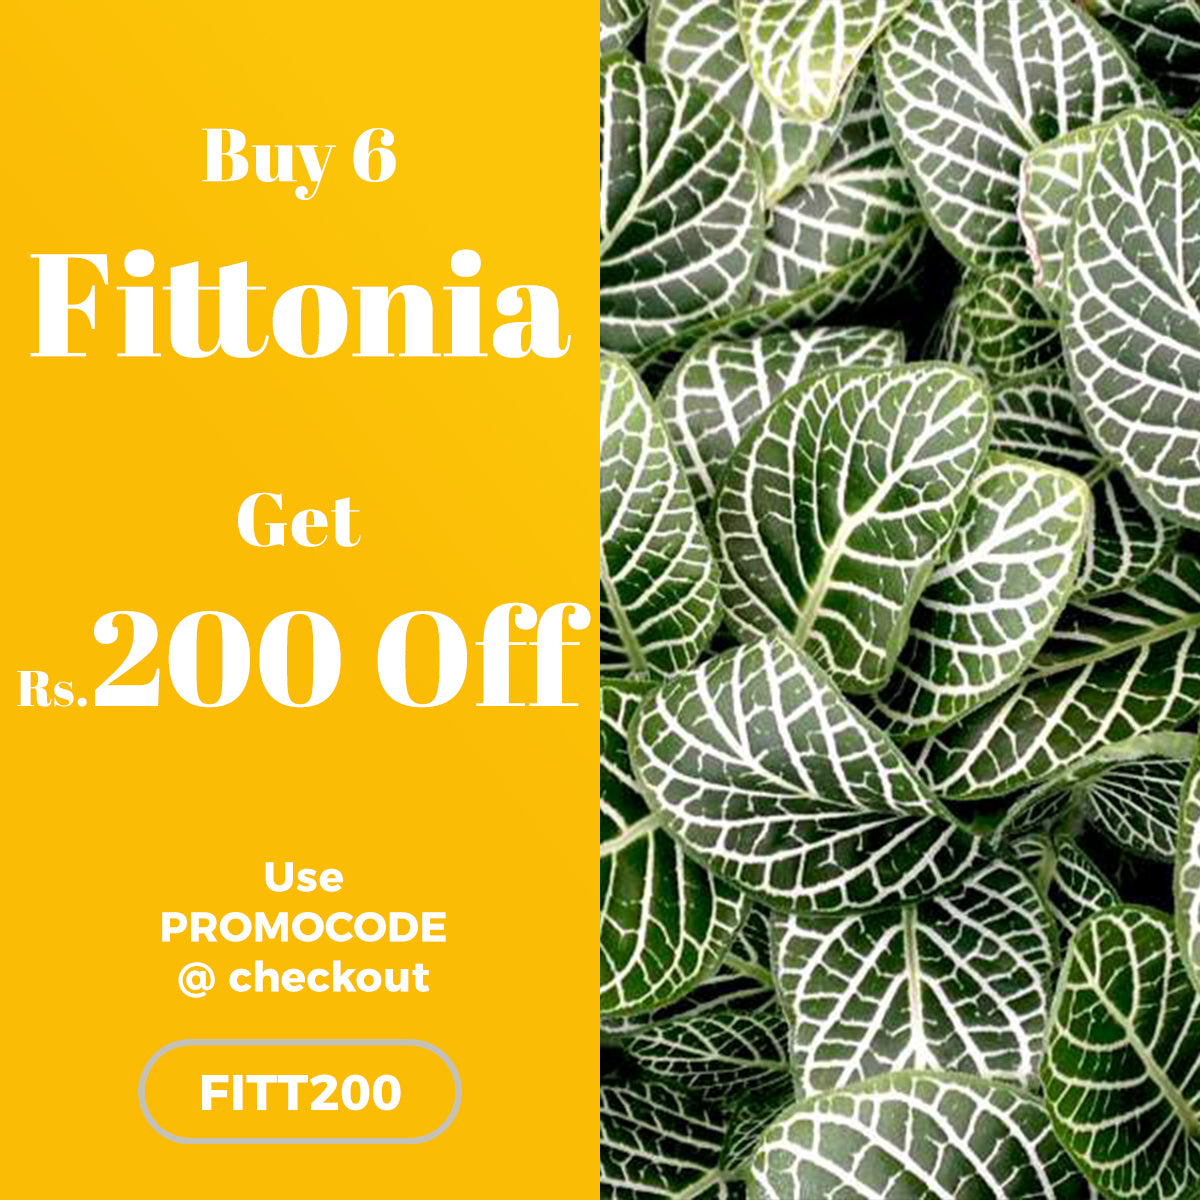 Buy 6 Fittnoia and get Rs.200 OFF